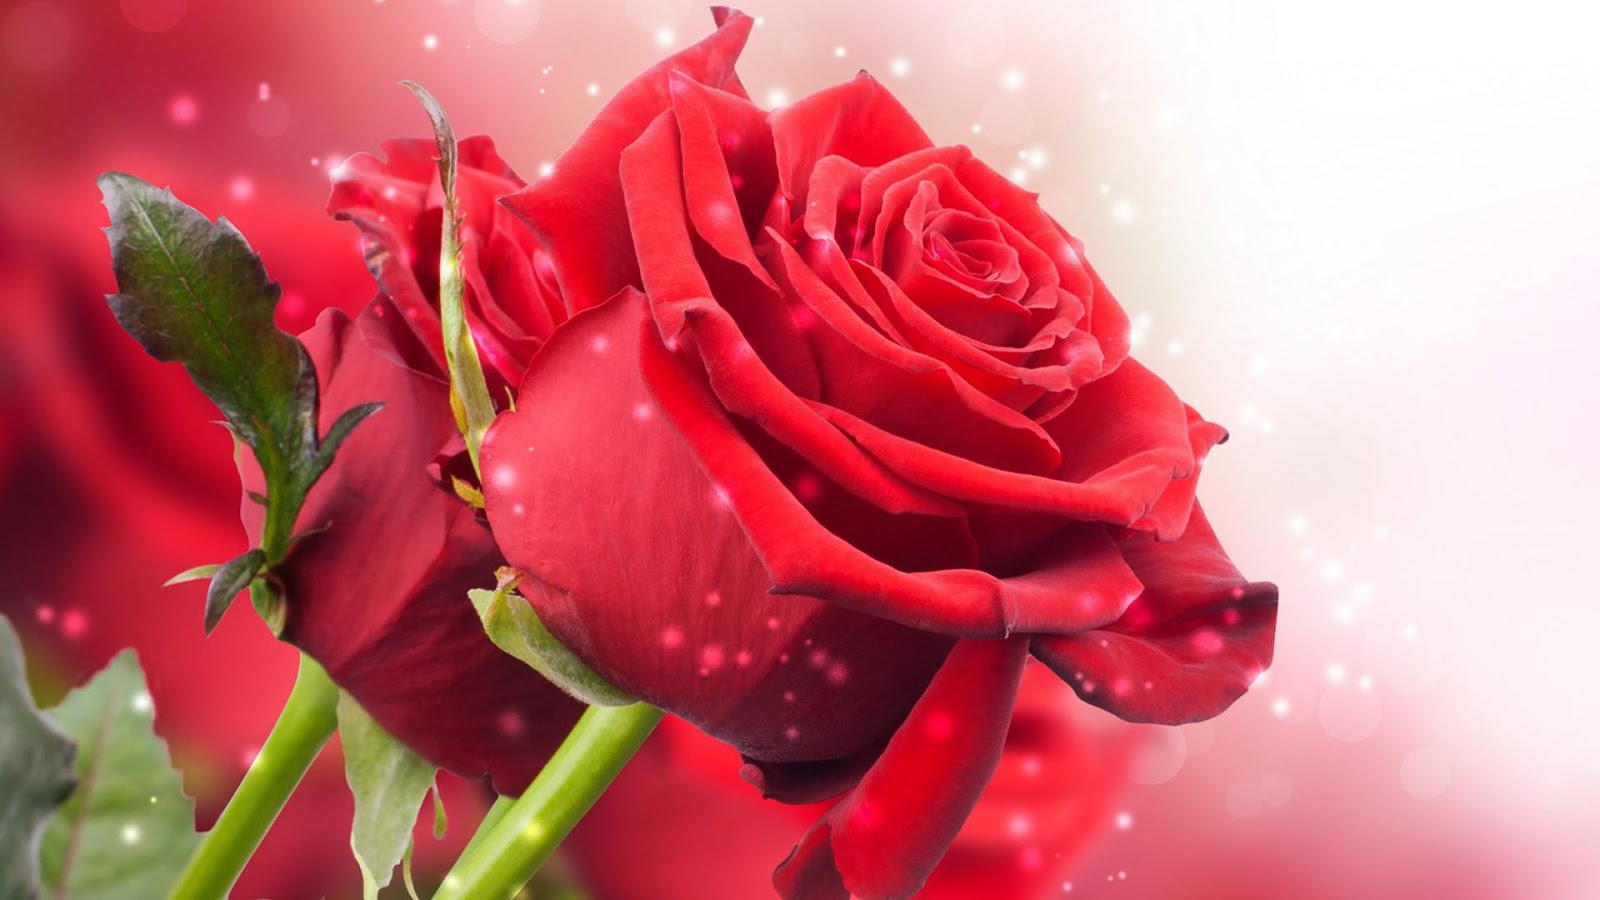 Rose Wallpaper Red Rose Live Wallpaper